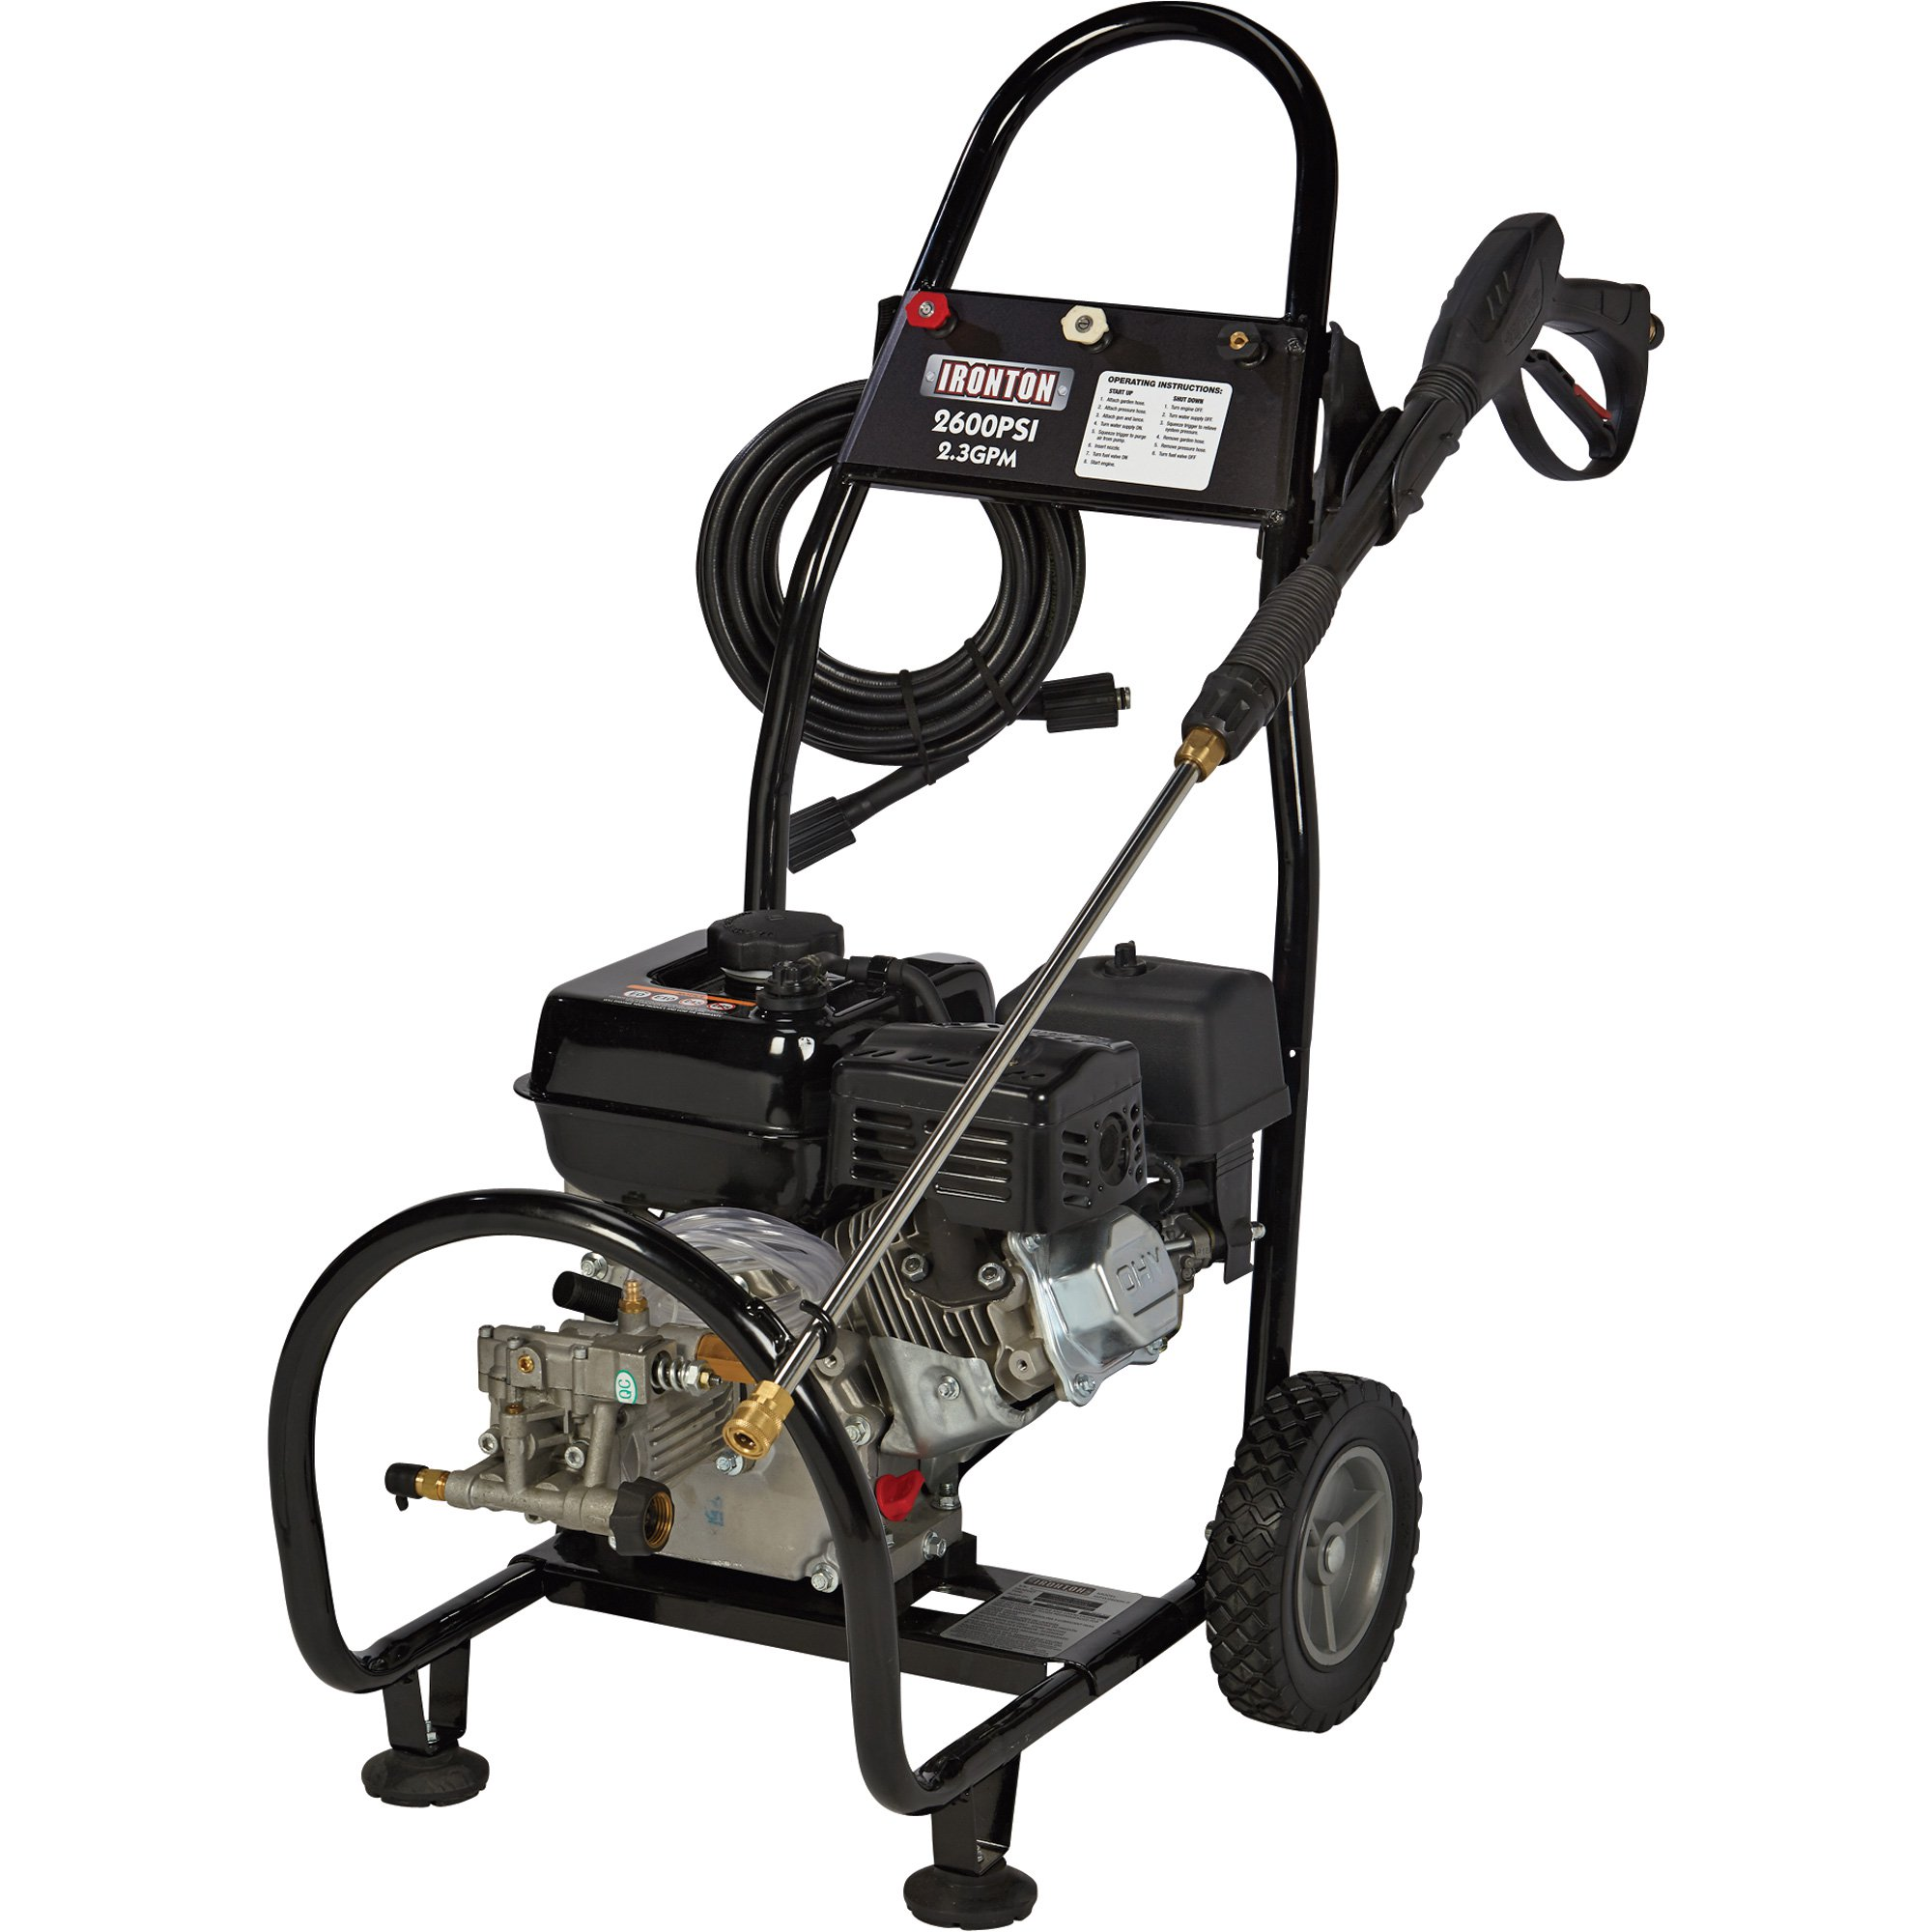 Ironton Gas Cold Water Pressure Washer - 2,600 PSI, 2.3 GPM - 87034 - 45810